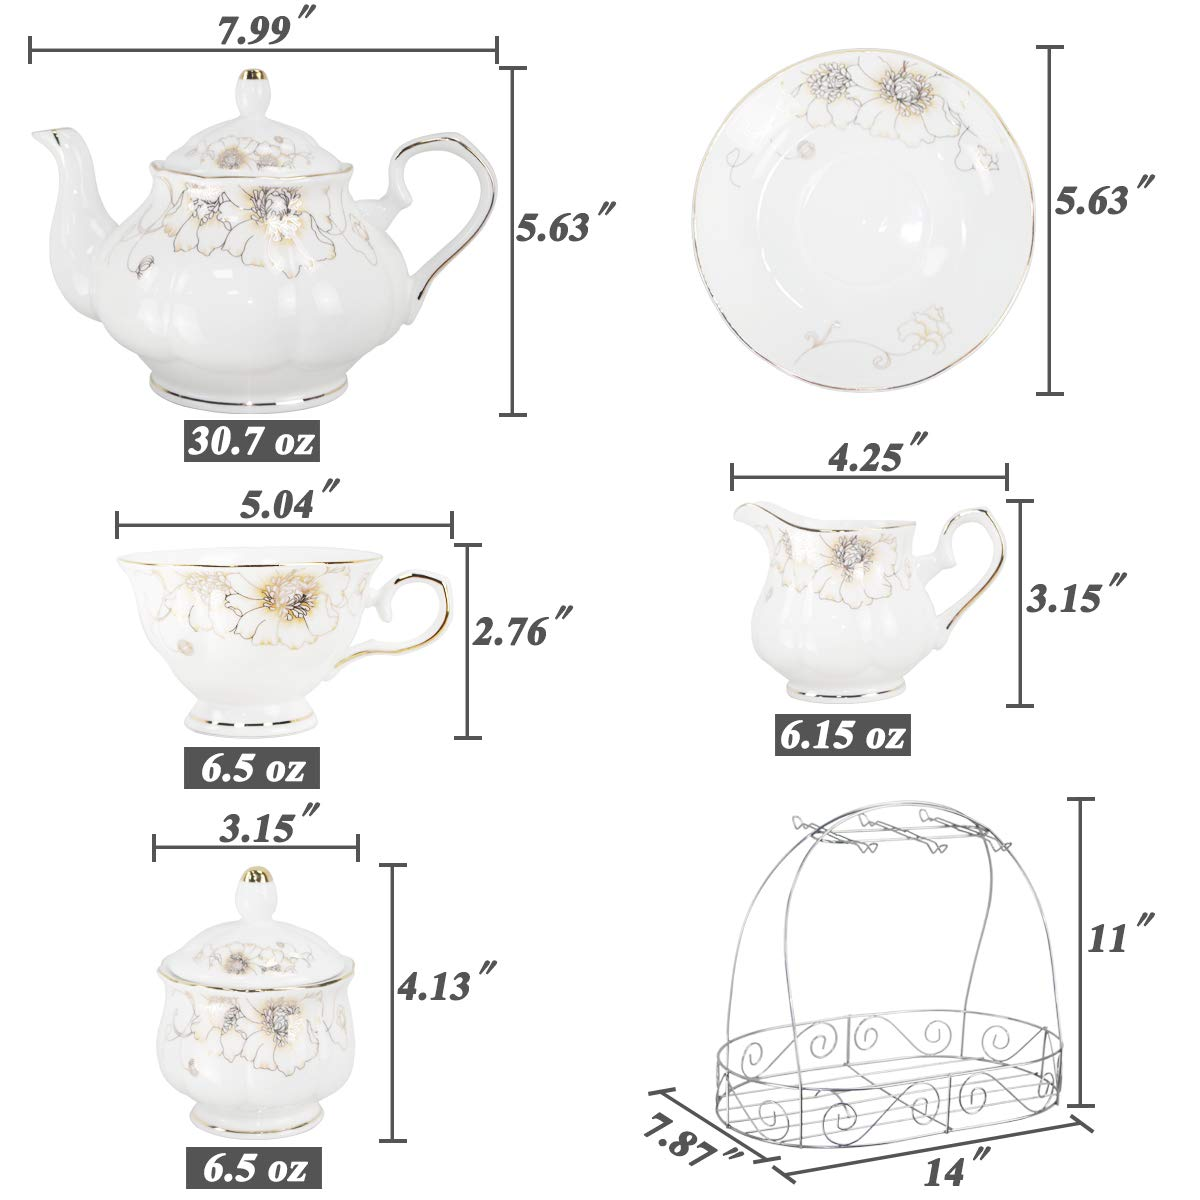 Porcelain Ceramic Coffee Tea Sets 15 Pieces with Metal Holder,Cups& Saucer Service for 6,with Teapot Sugar Bowl Cream Pitcher by CHP (Image #6)